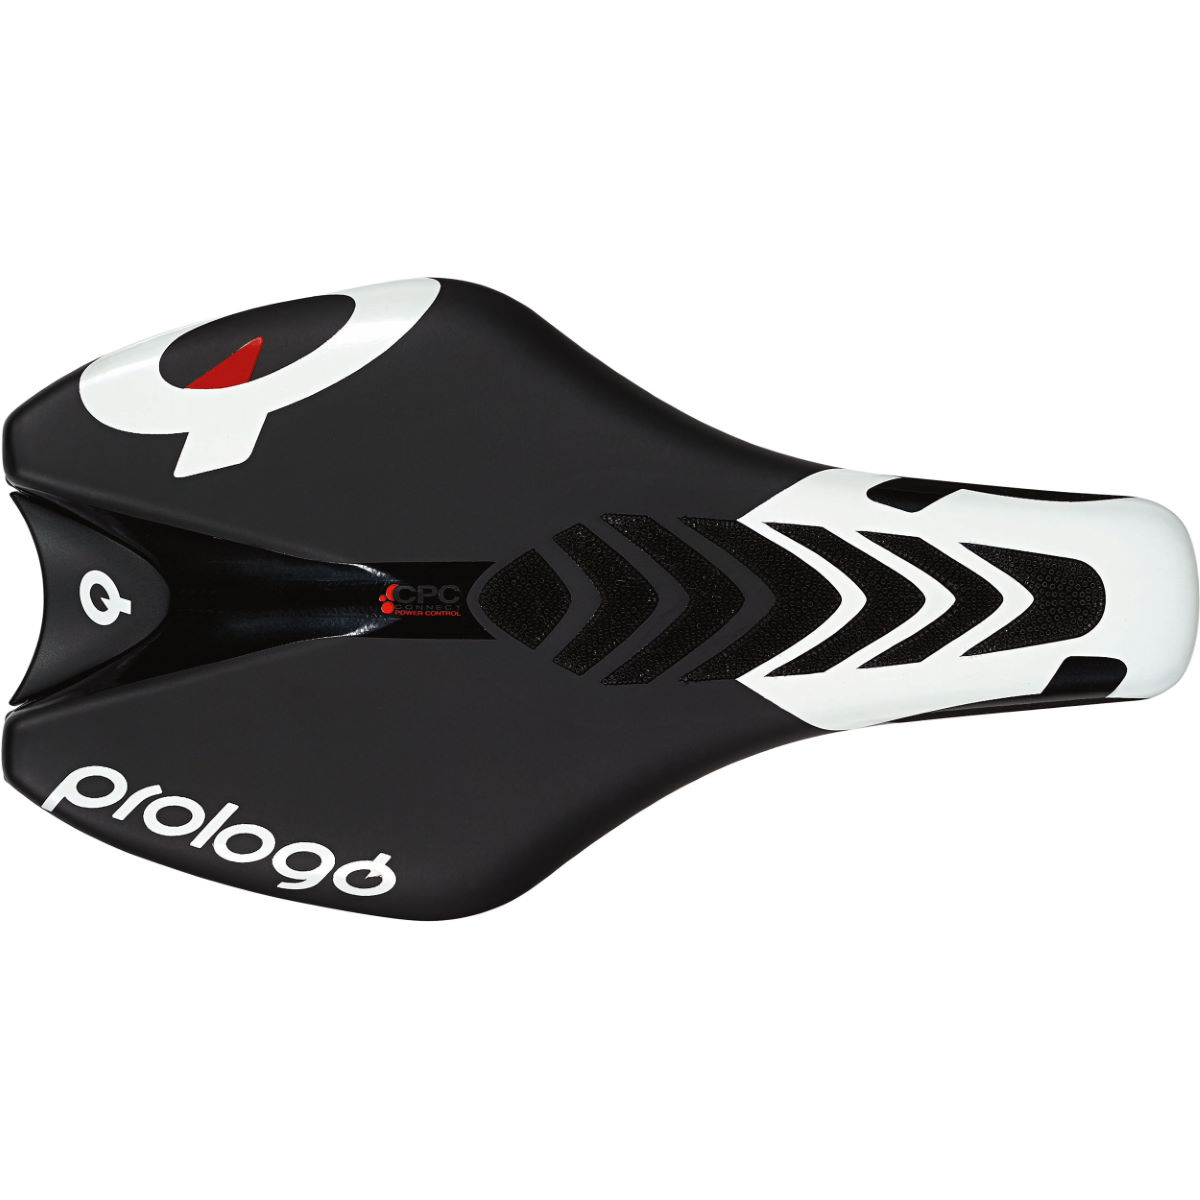 Prologo Tgale Tt Cpc Saddle (with Tirox Rails) - W 128mm Black